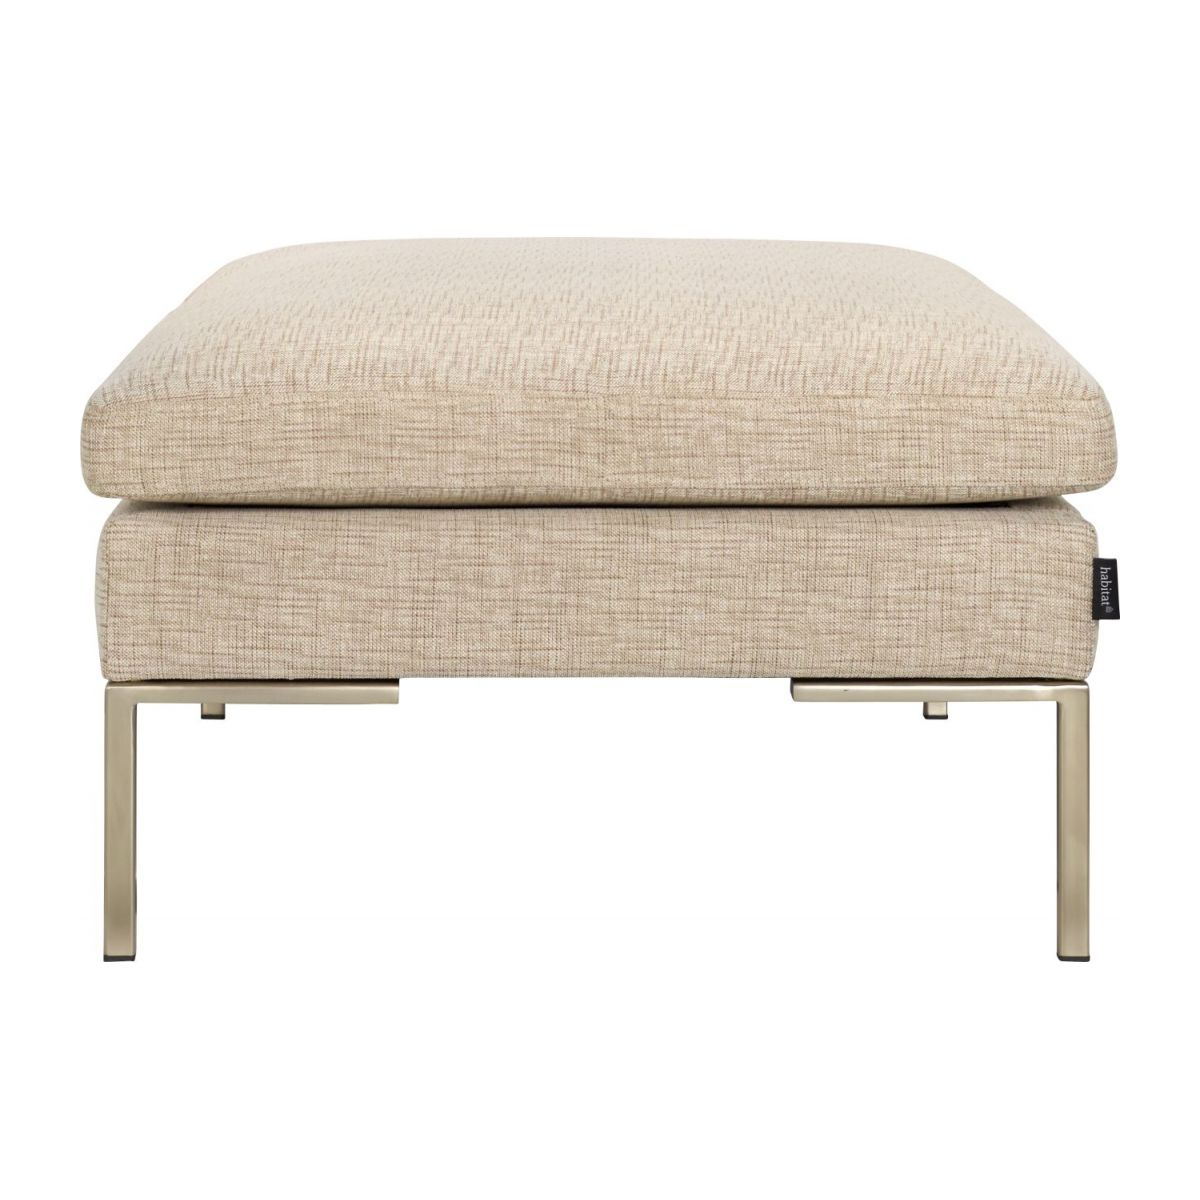 Footstool in Ancio fabric, nature n°4